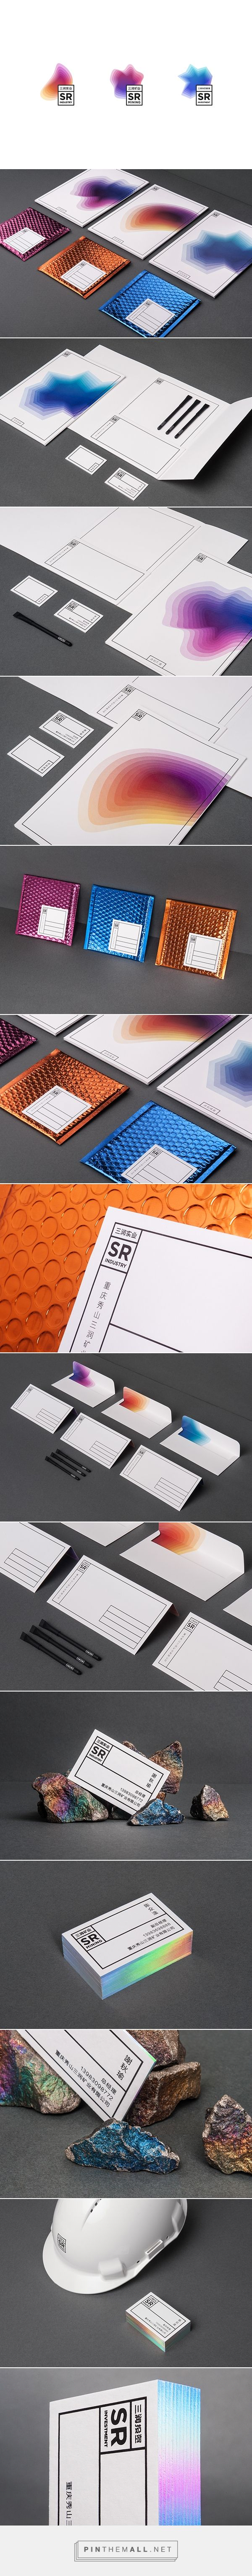 found by hedviggen ⚓️ on pinterest | ci & packaging | fonts | gfx | personalized | paper | craft | design | business card | Logo Design | branding | Brand Board | Web Design | corporate identity | brand identity | inspiration  Sanrun Mining Co.